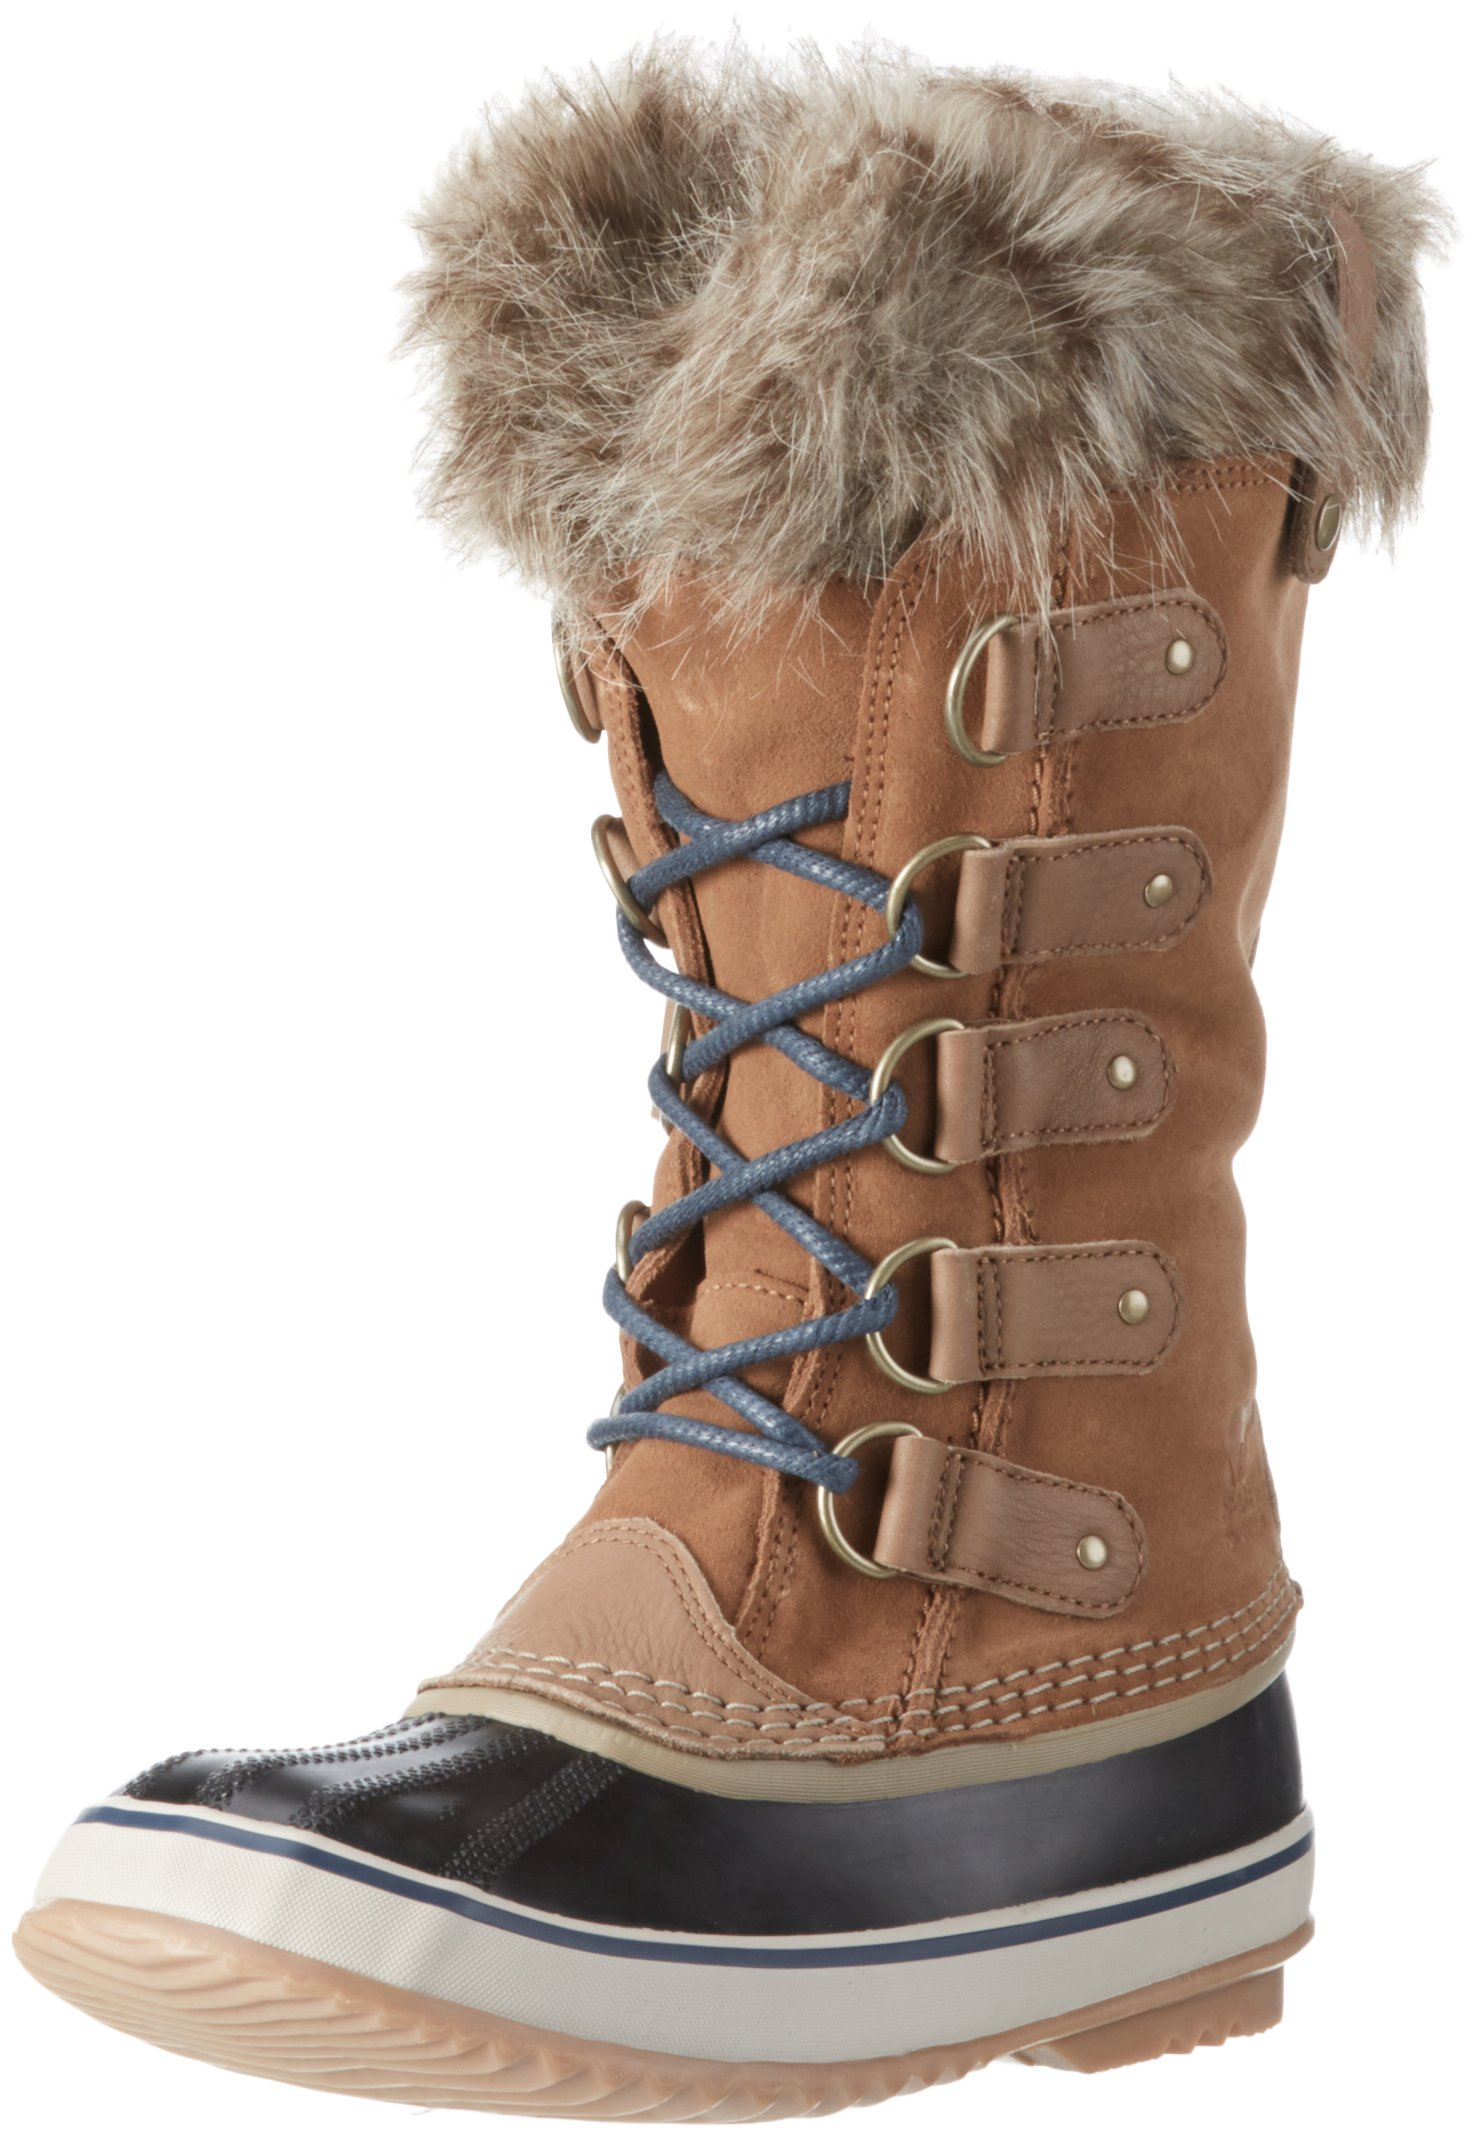 Sorel Women's Joan Of Arctic Snow Boot, Elk, 9 M US